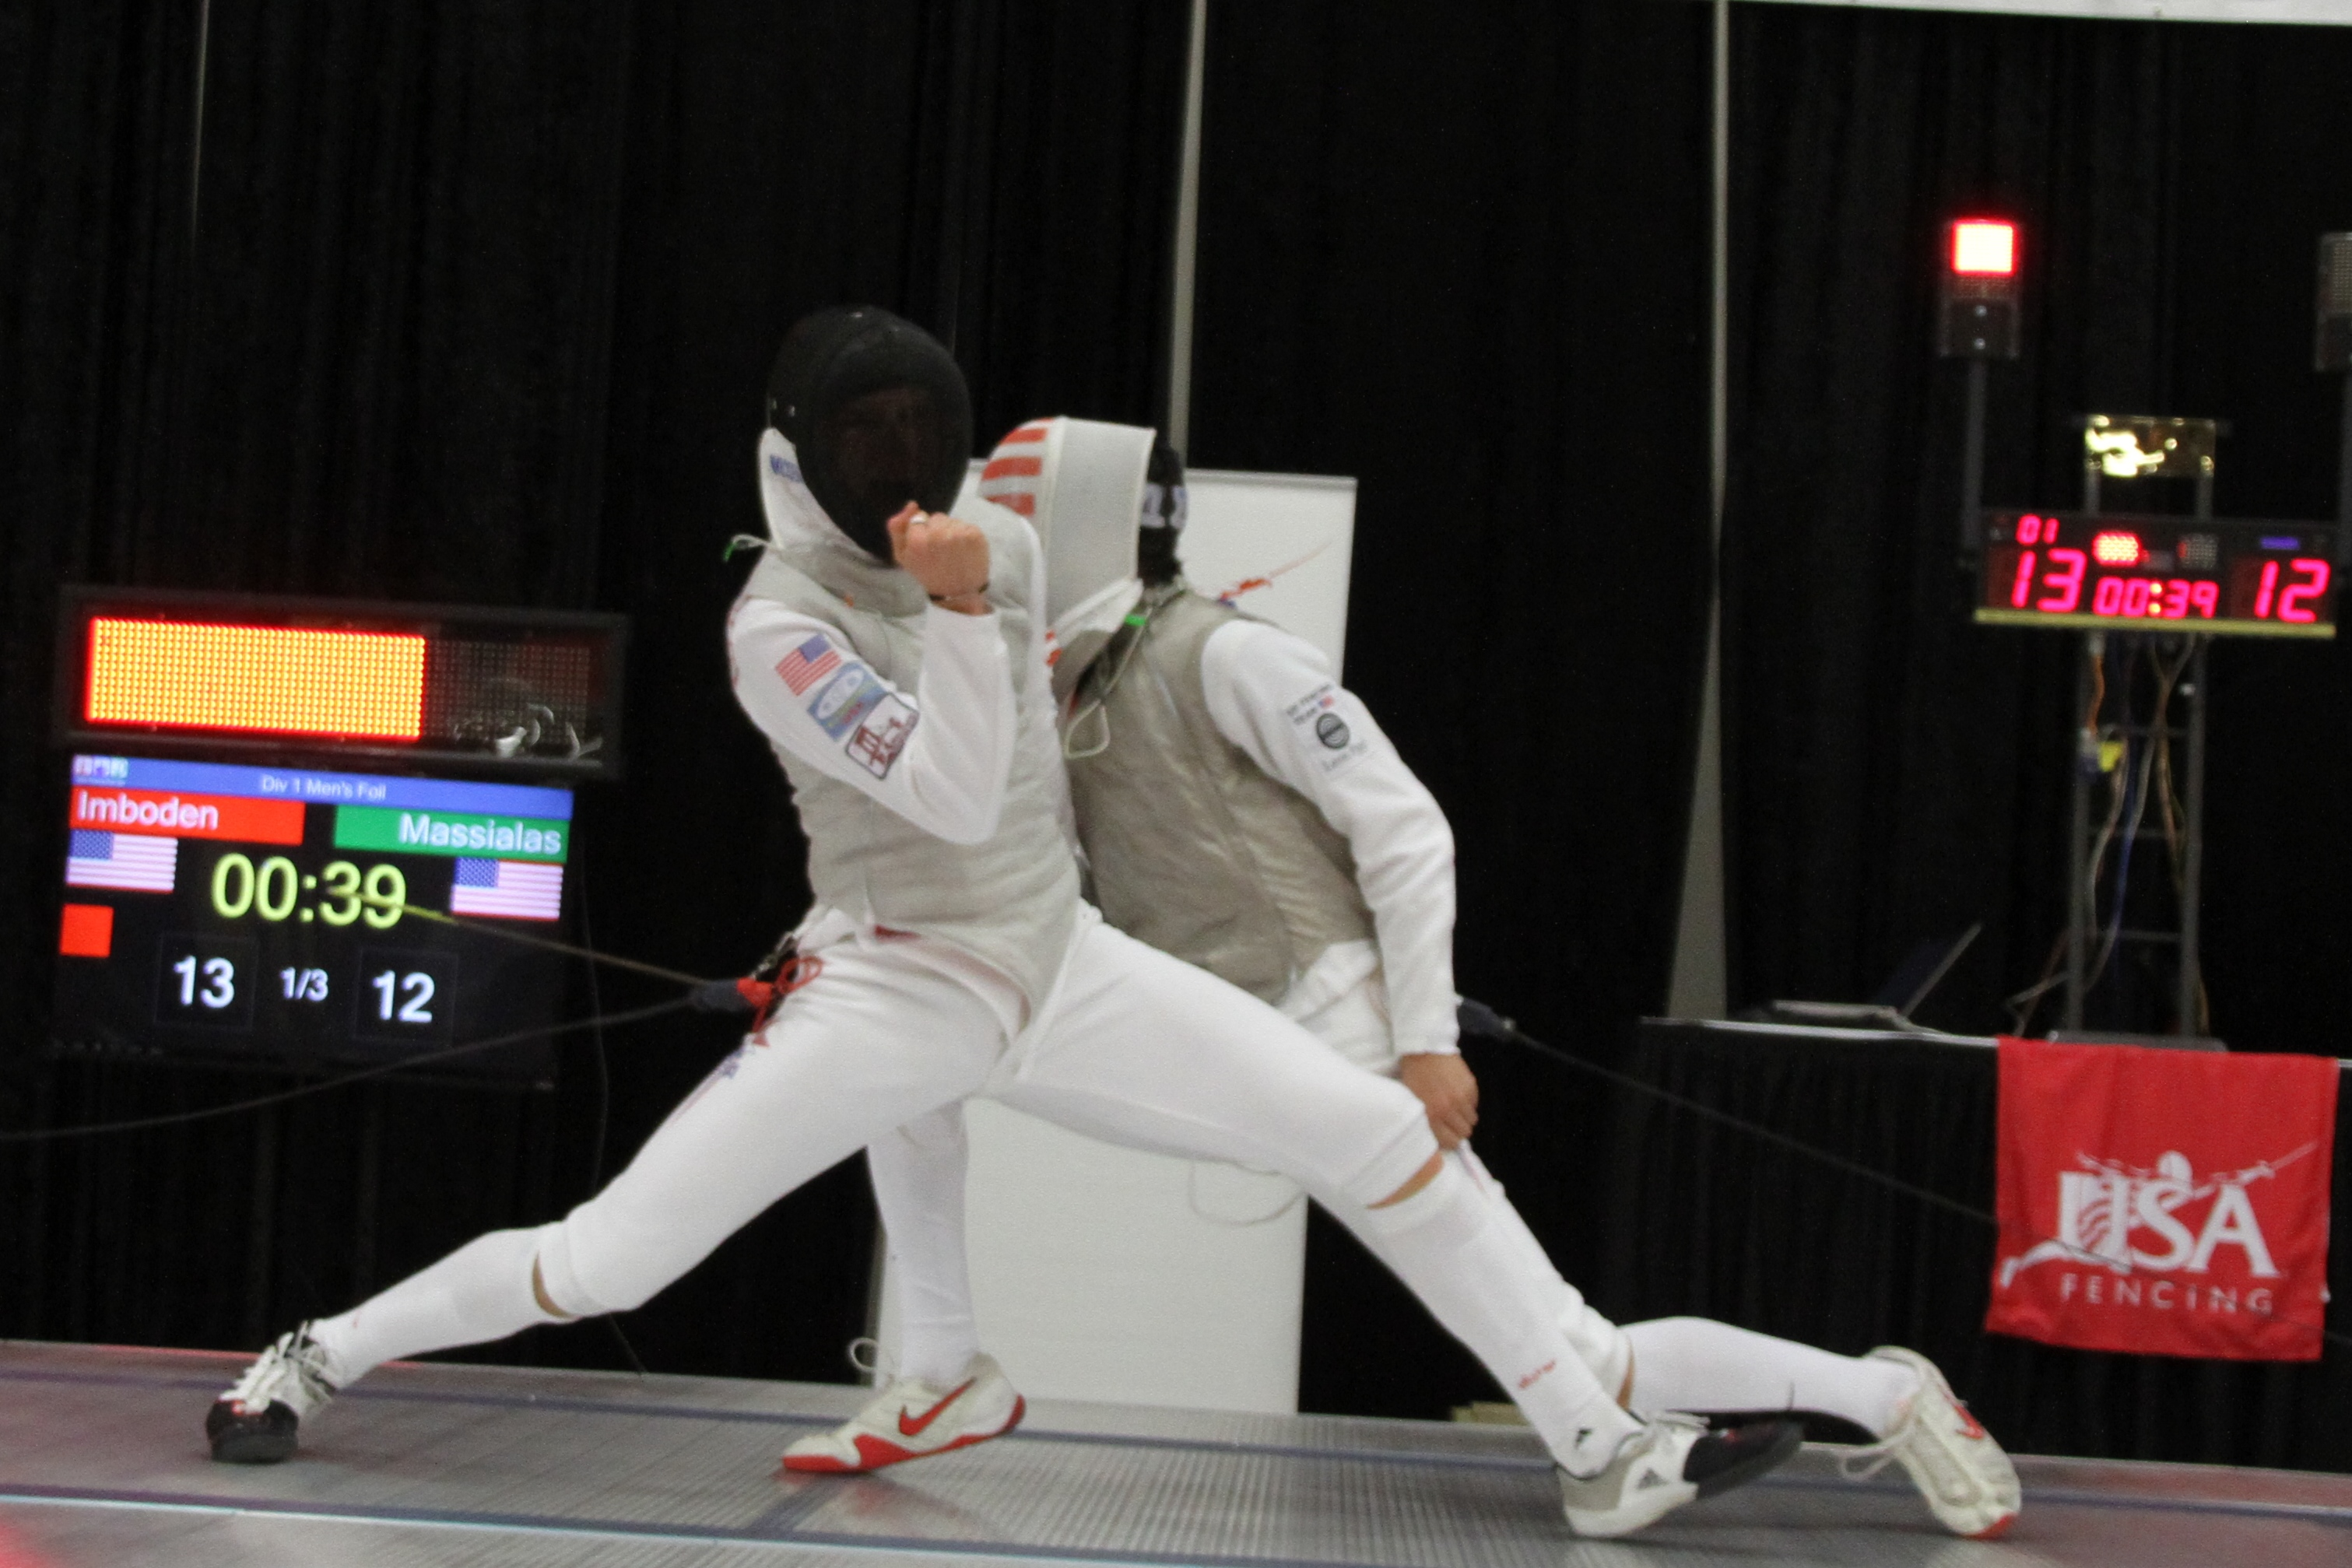 imboden single men 19-year-old foilist race imboden, a young phenom who will contend for one of  the top spots in london, puts in seven and a half hours of fencing and workouts.